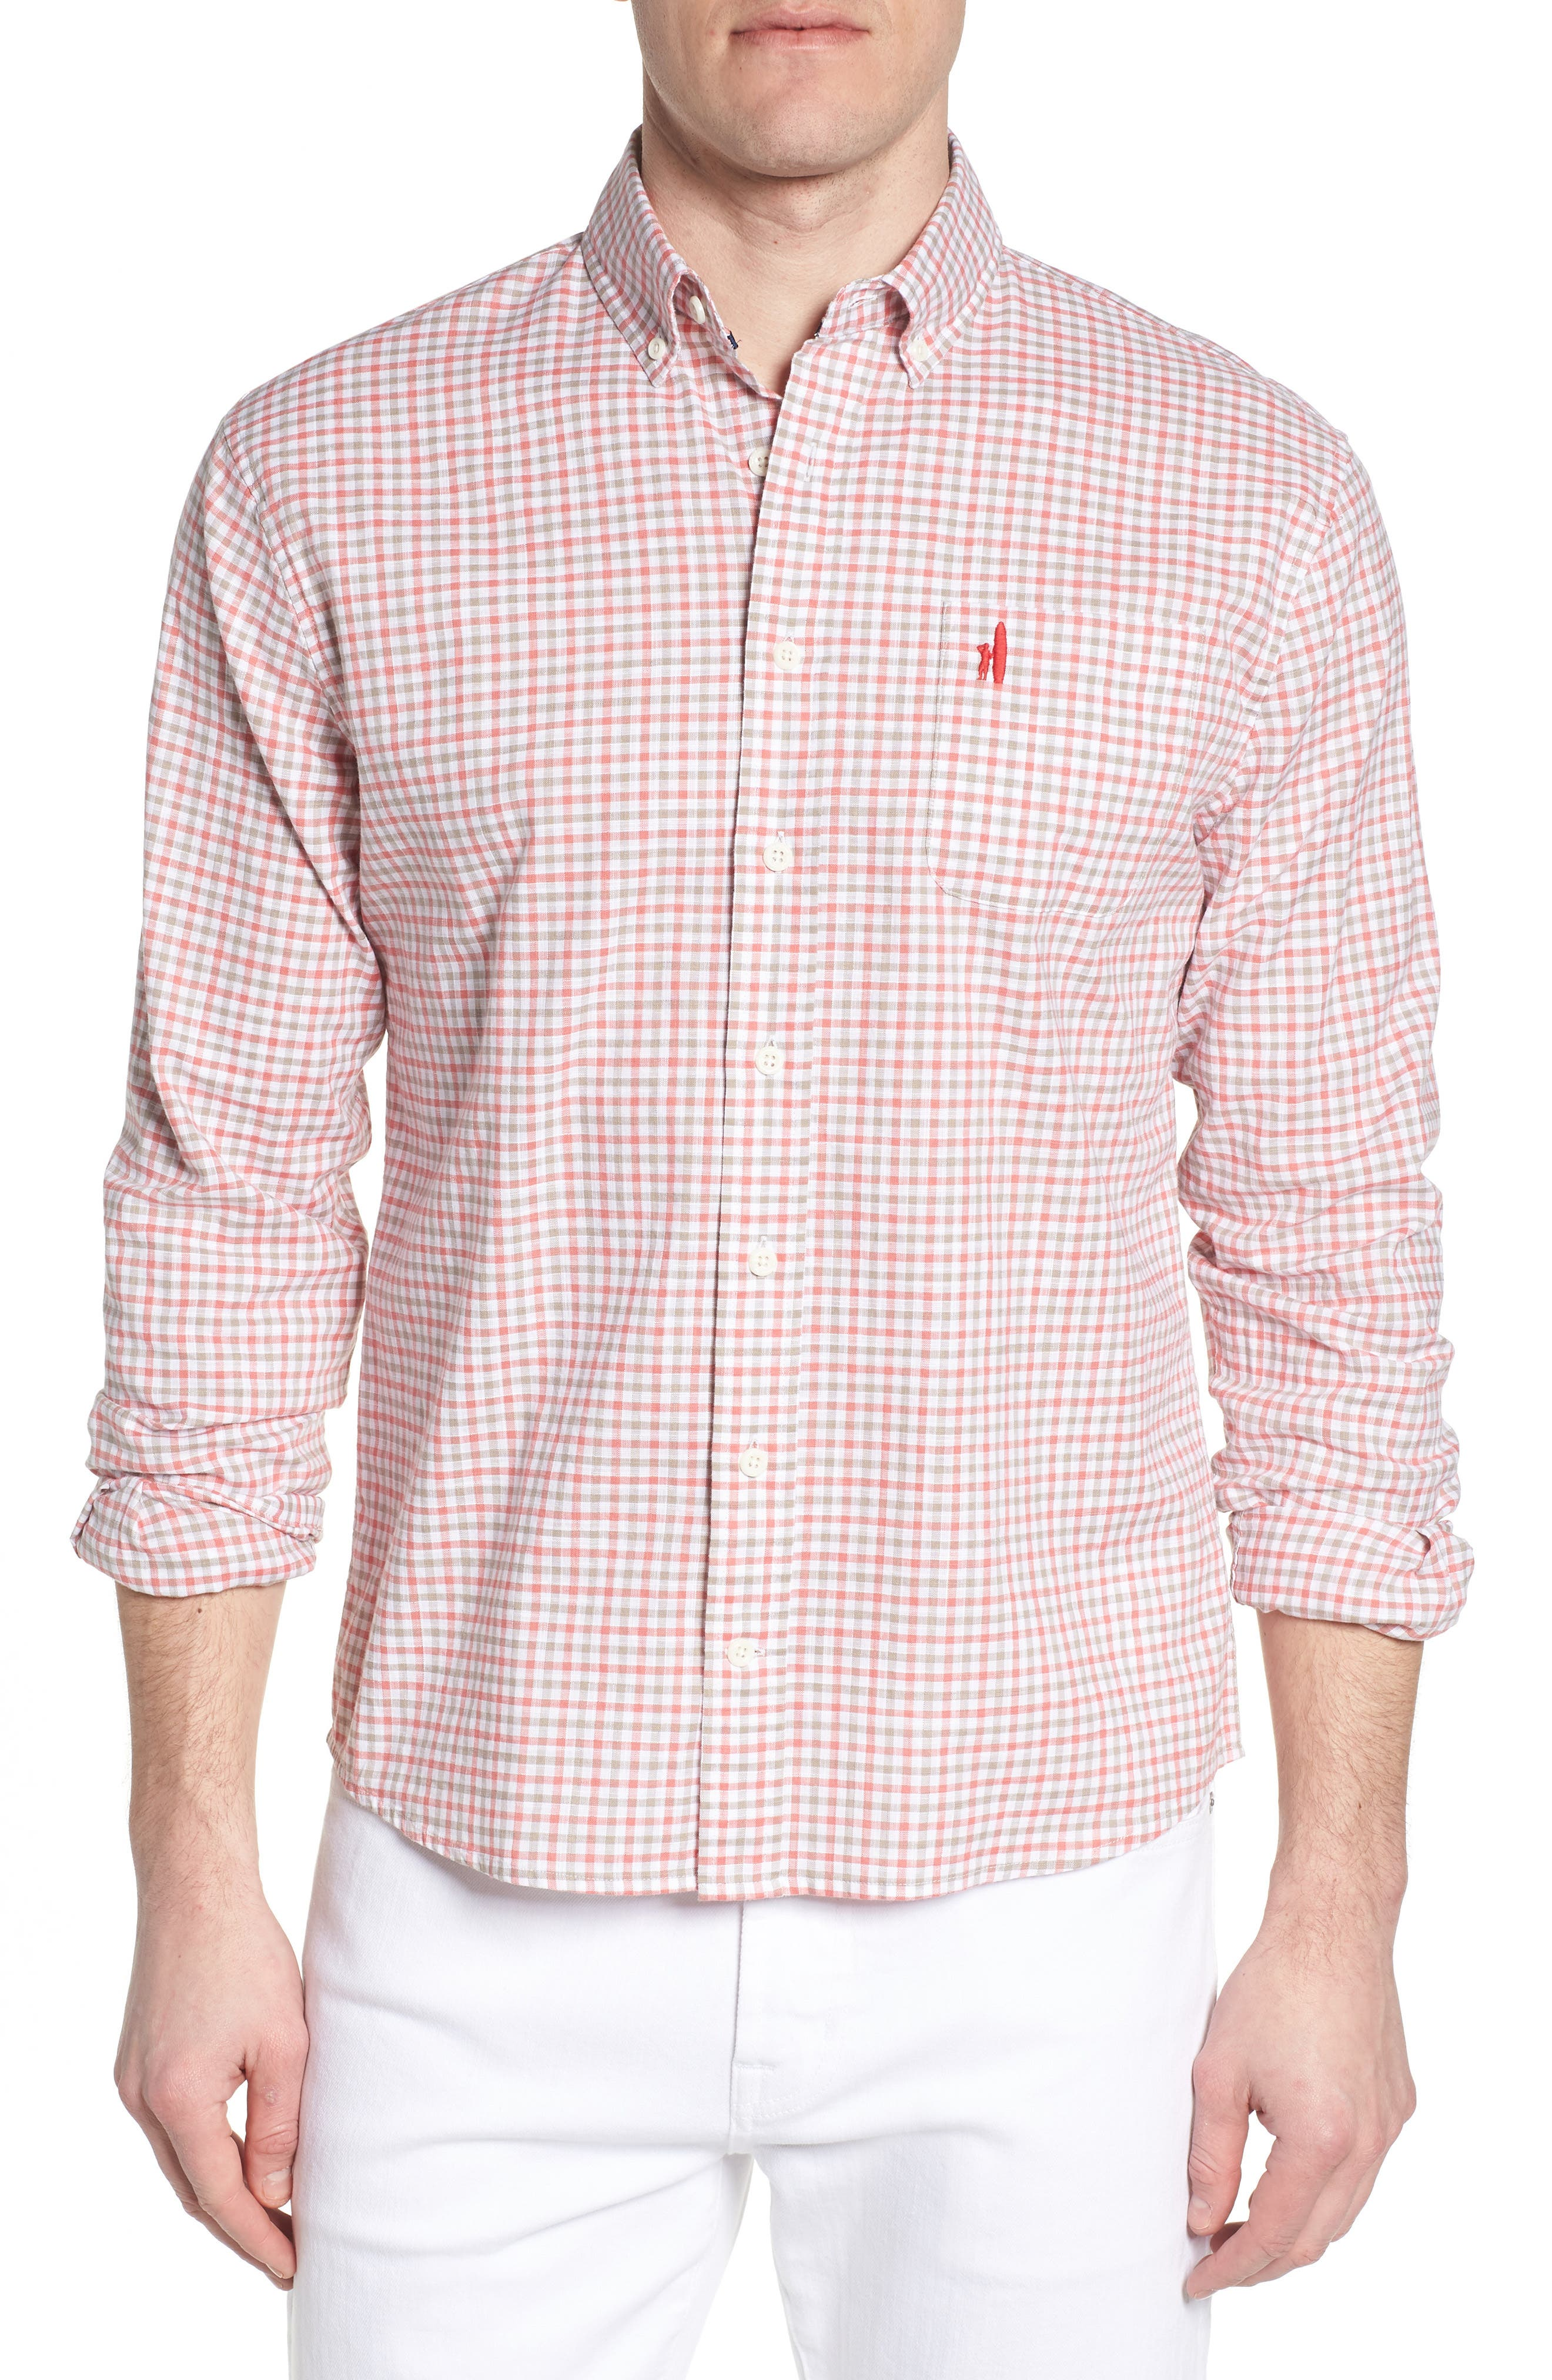 Driscoll Regular Fit Sport Shirt,                         Main,                         color, Malibu Red